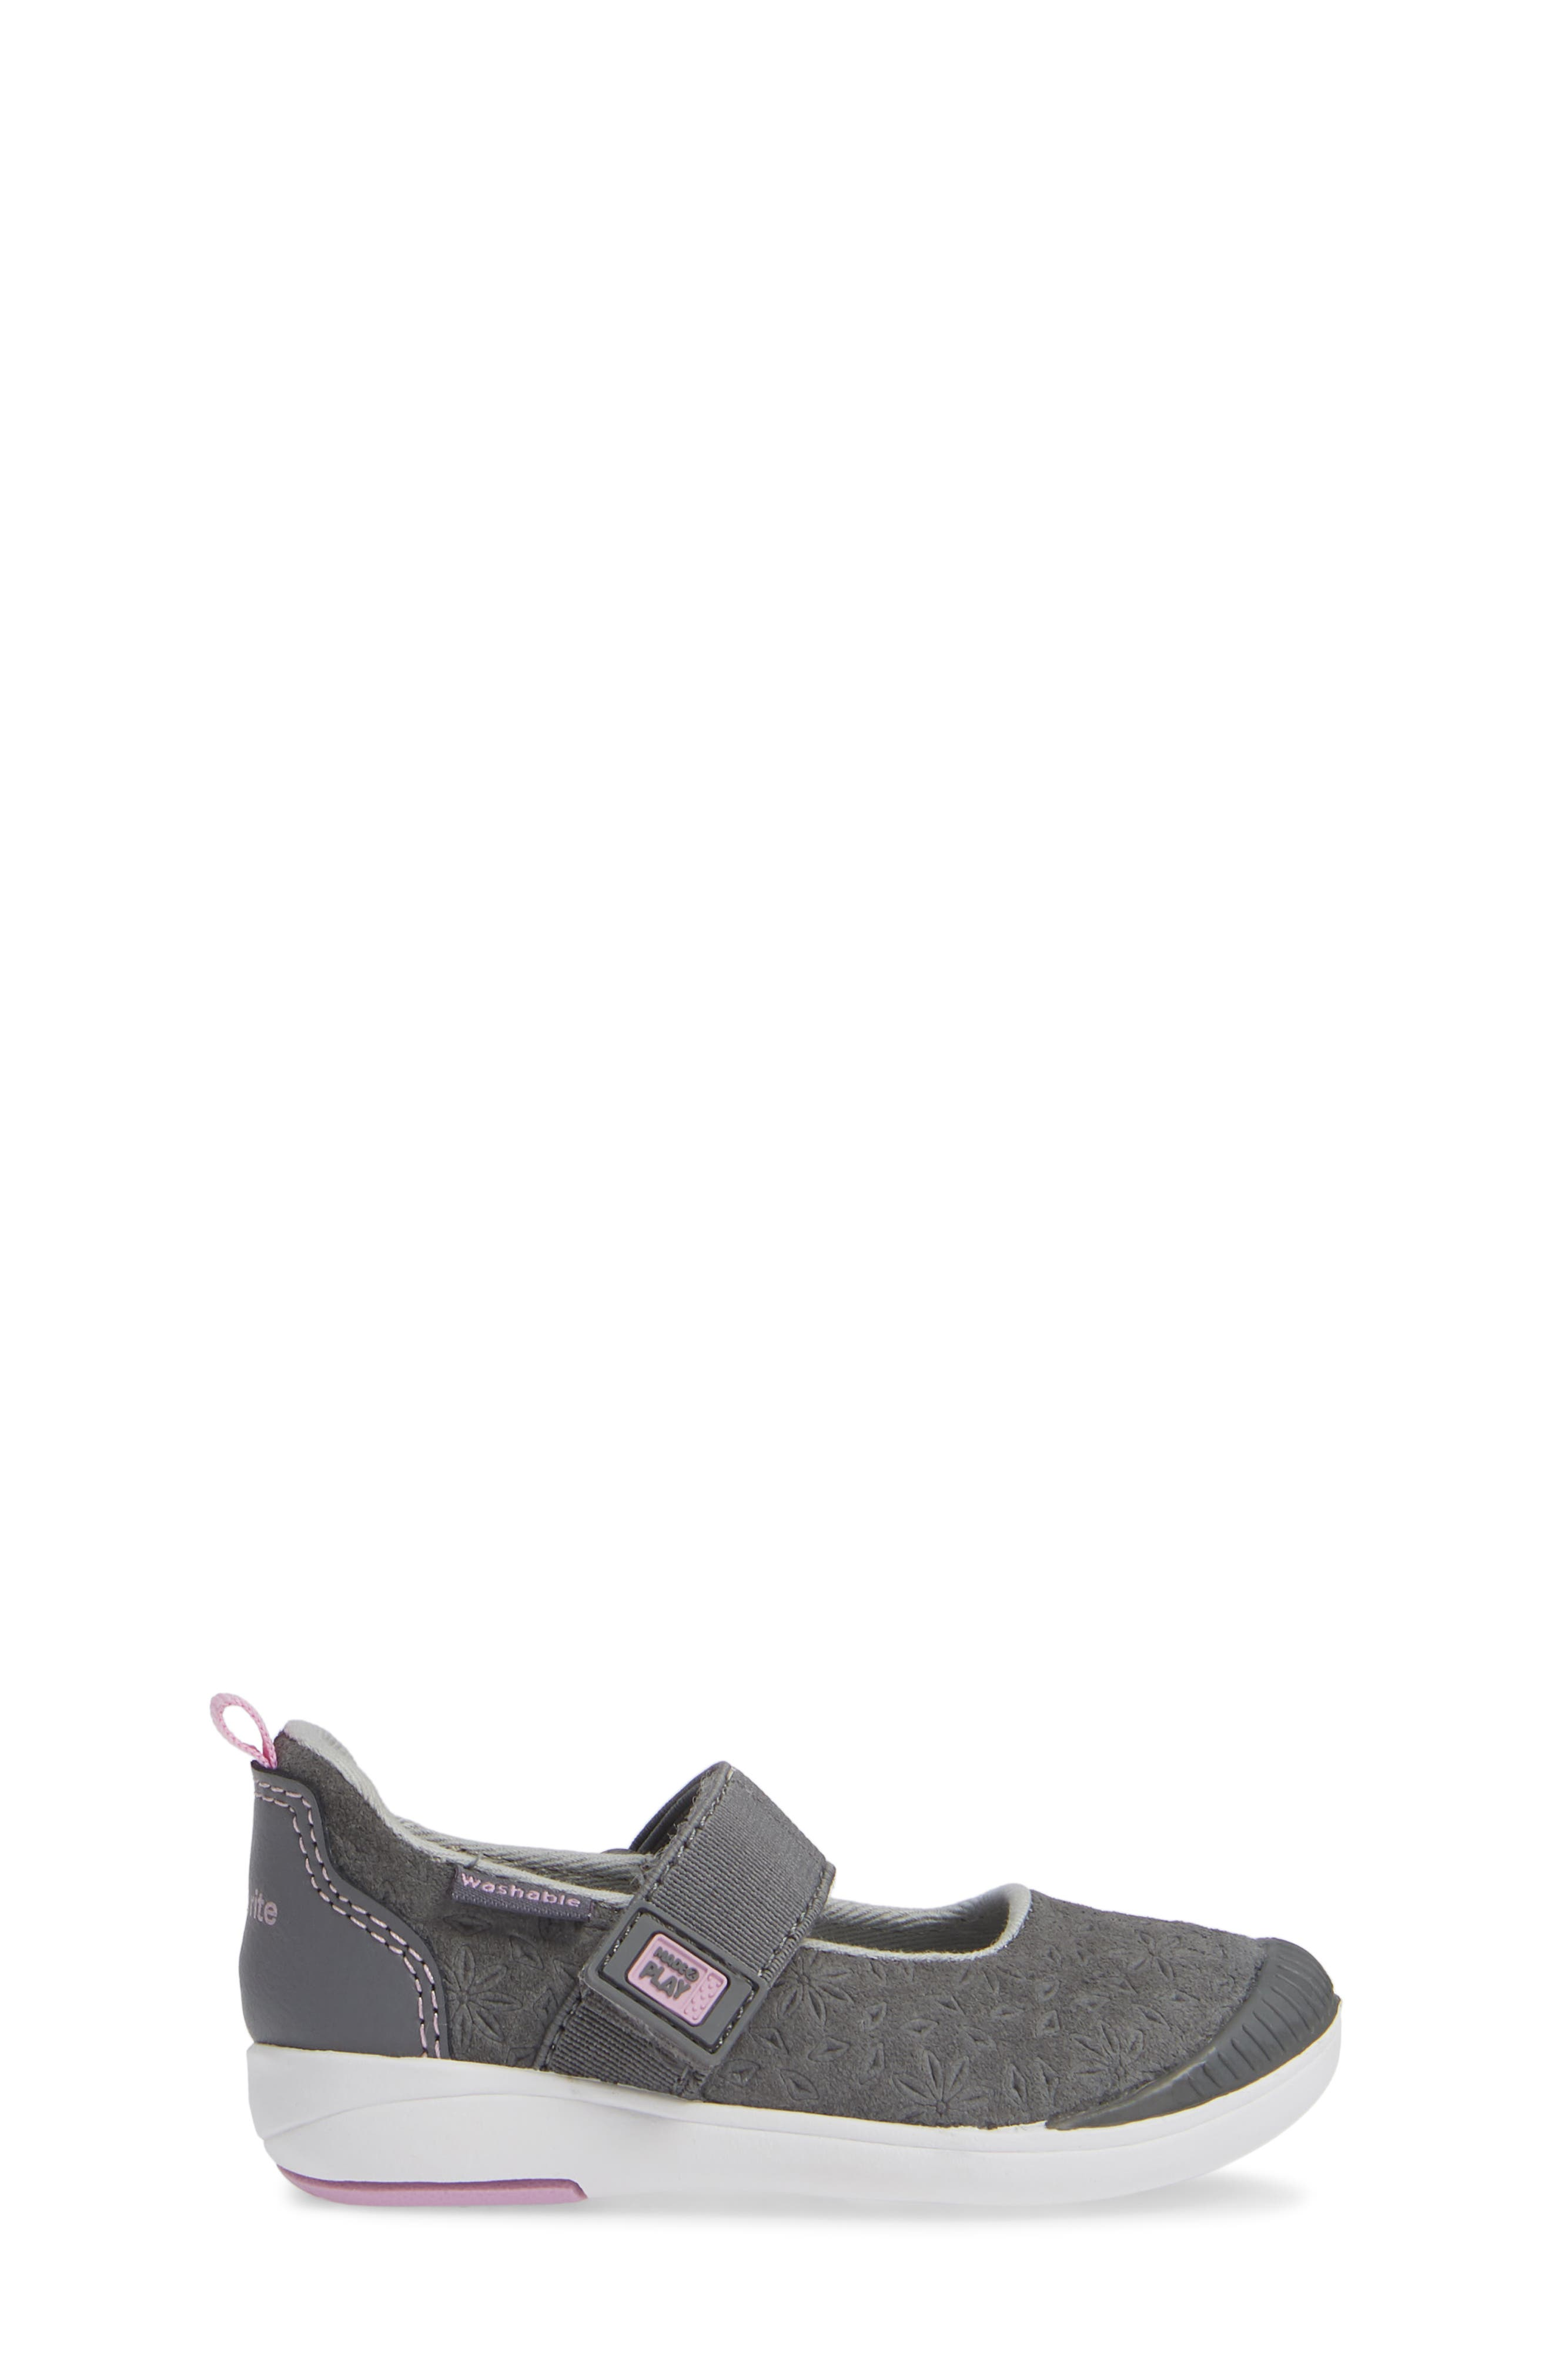 Made2Play<sup>®</sup> Lia Washable Mary Jane Sneaker,                             Alternate thumbnail 3, color,                             GREY